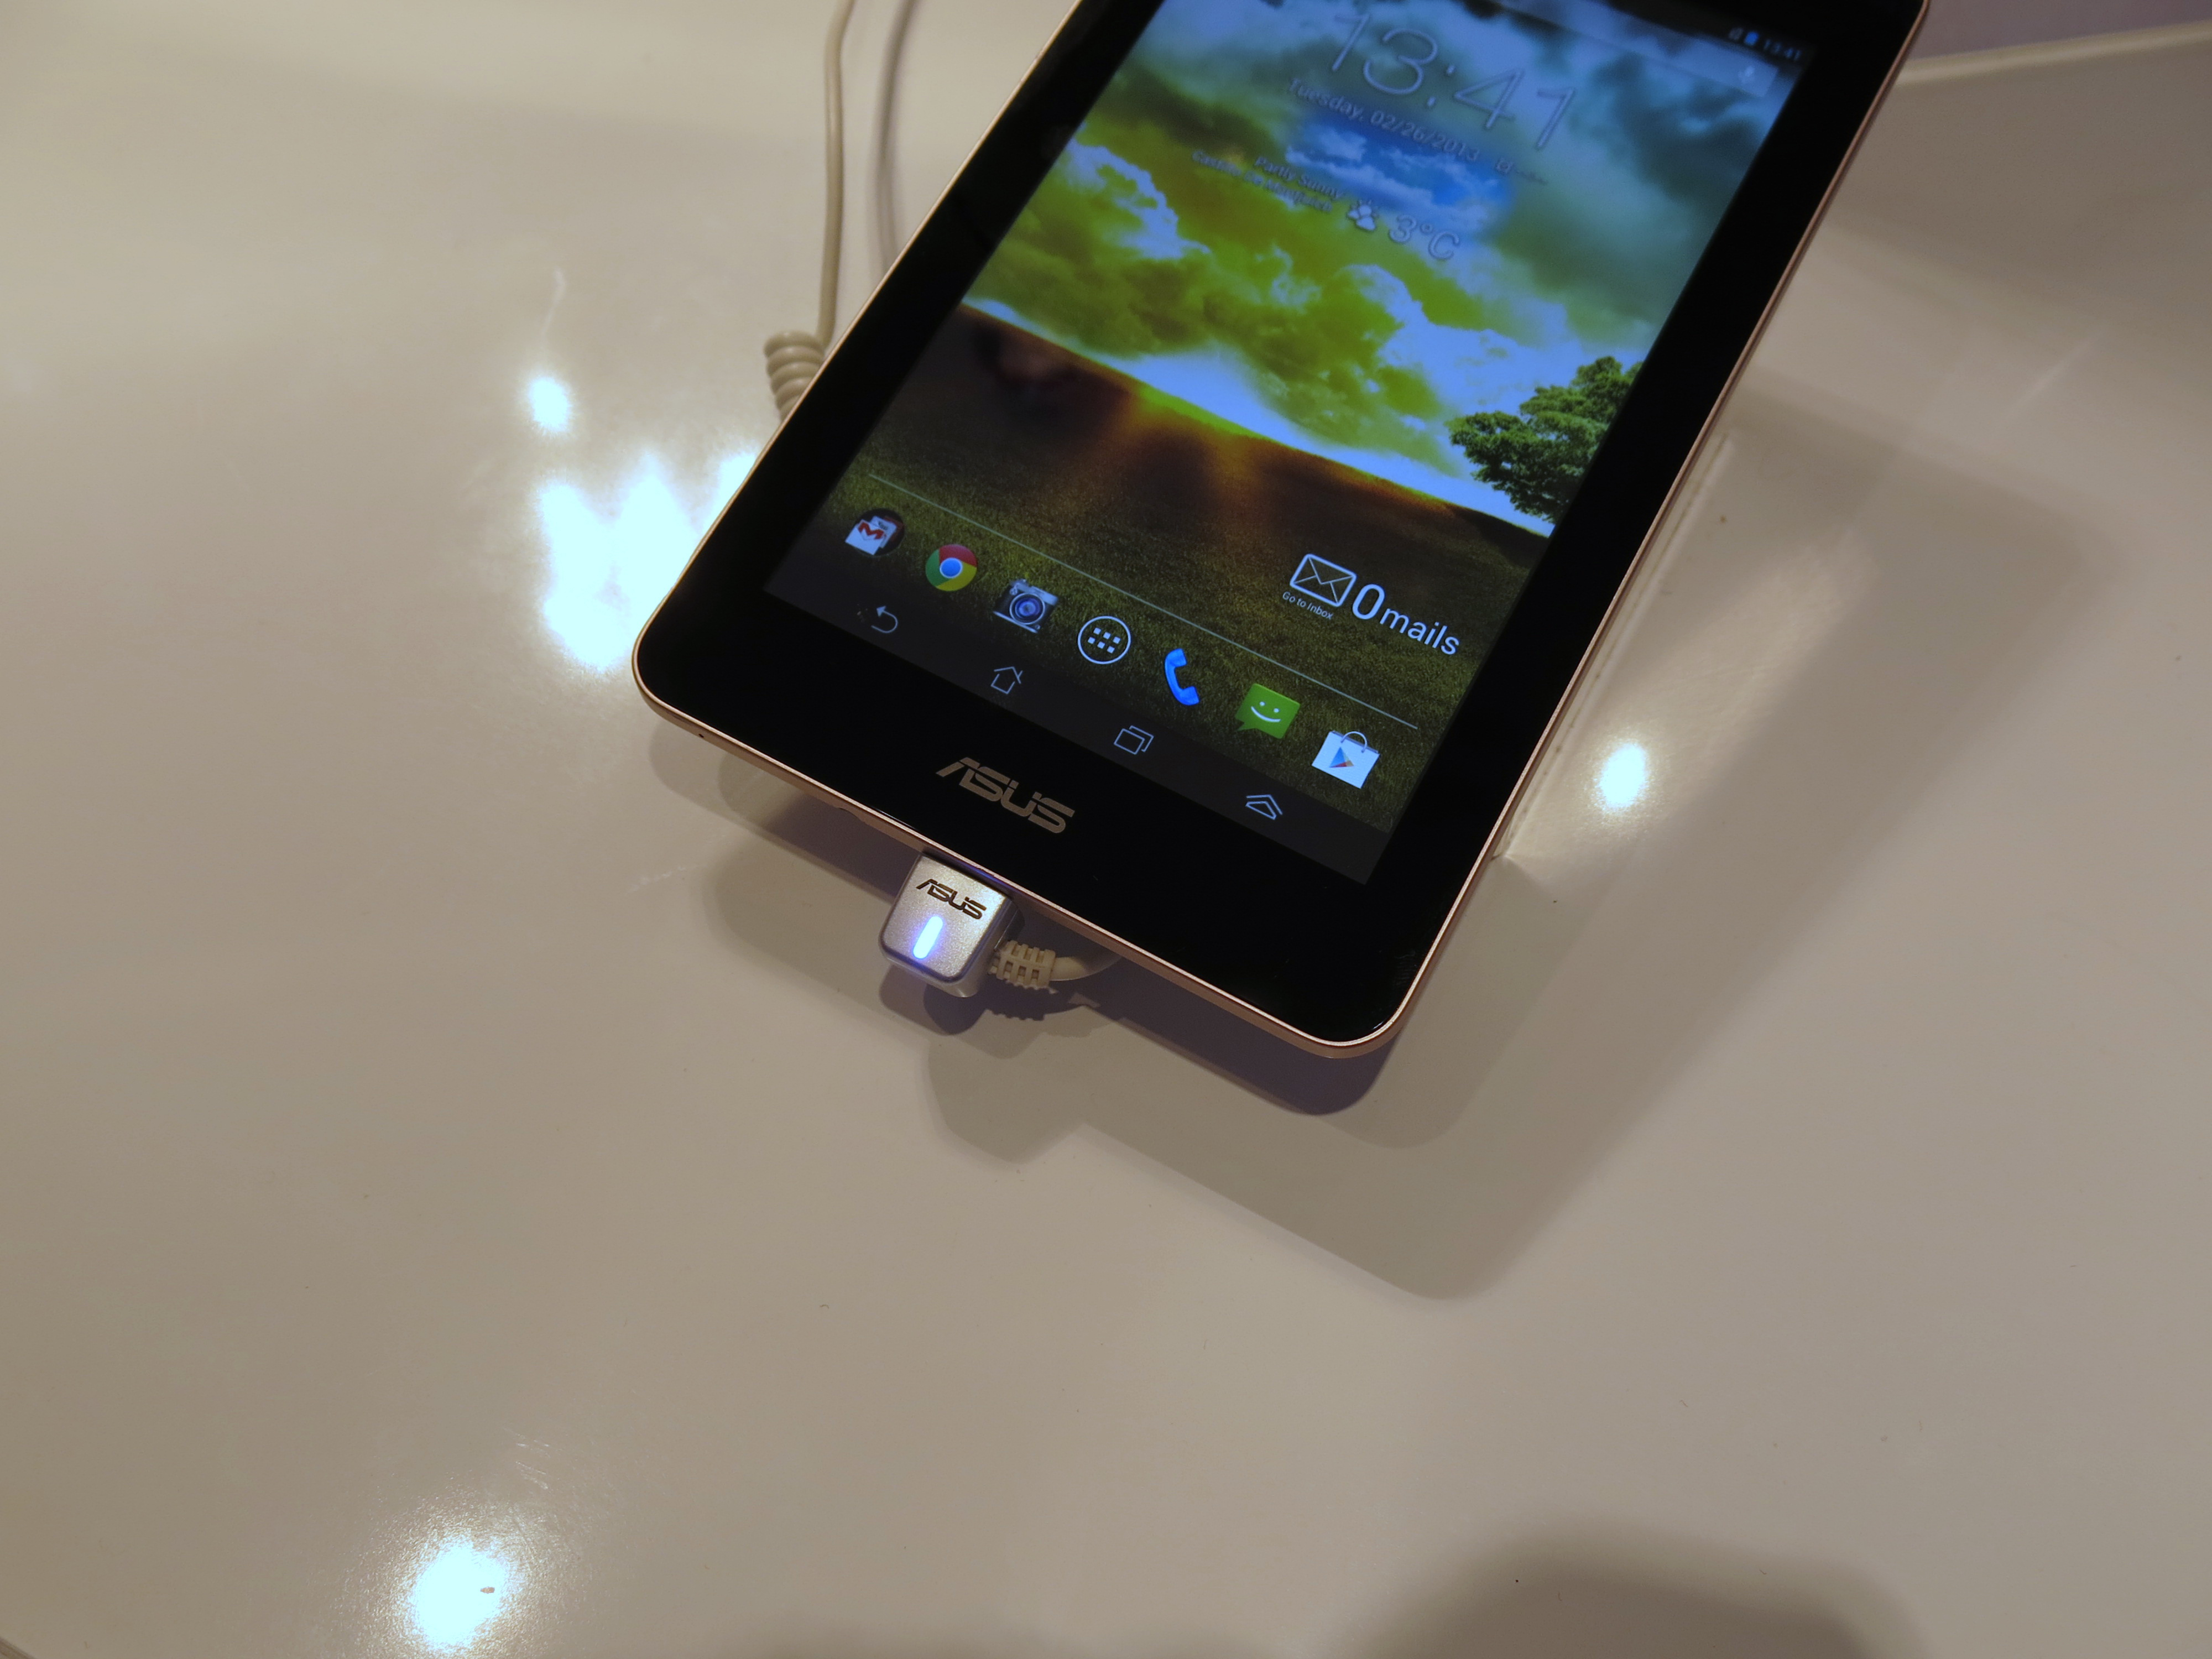 MWC 2013: ASUS FonePad Hands on at MWC, Reveals Pretty ...